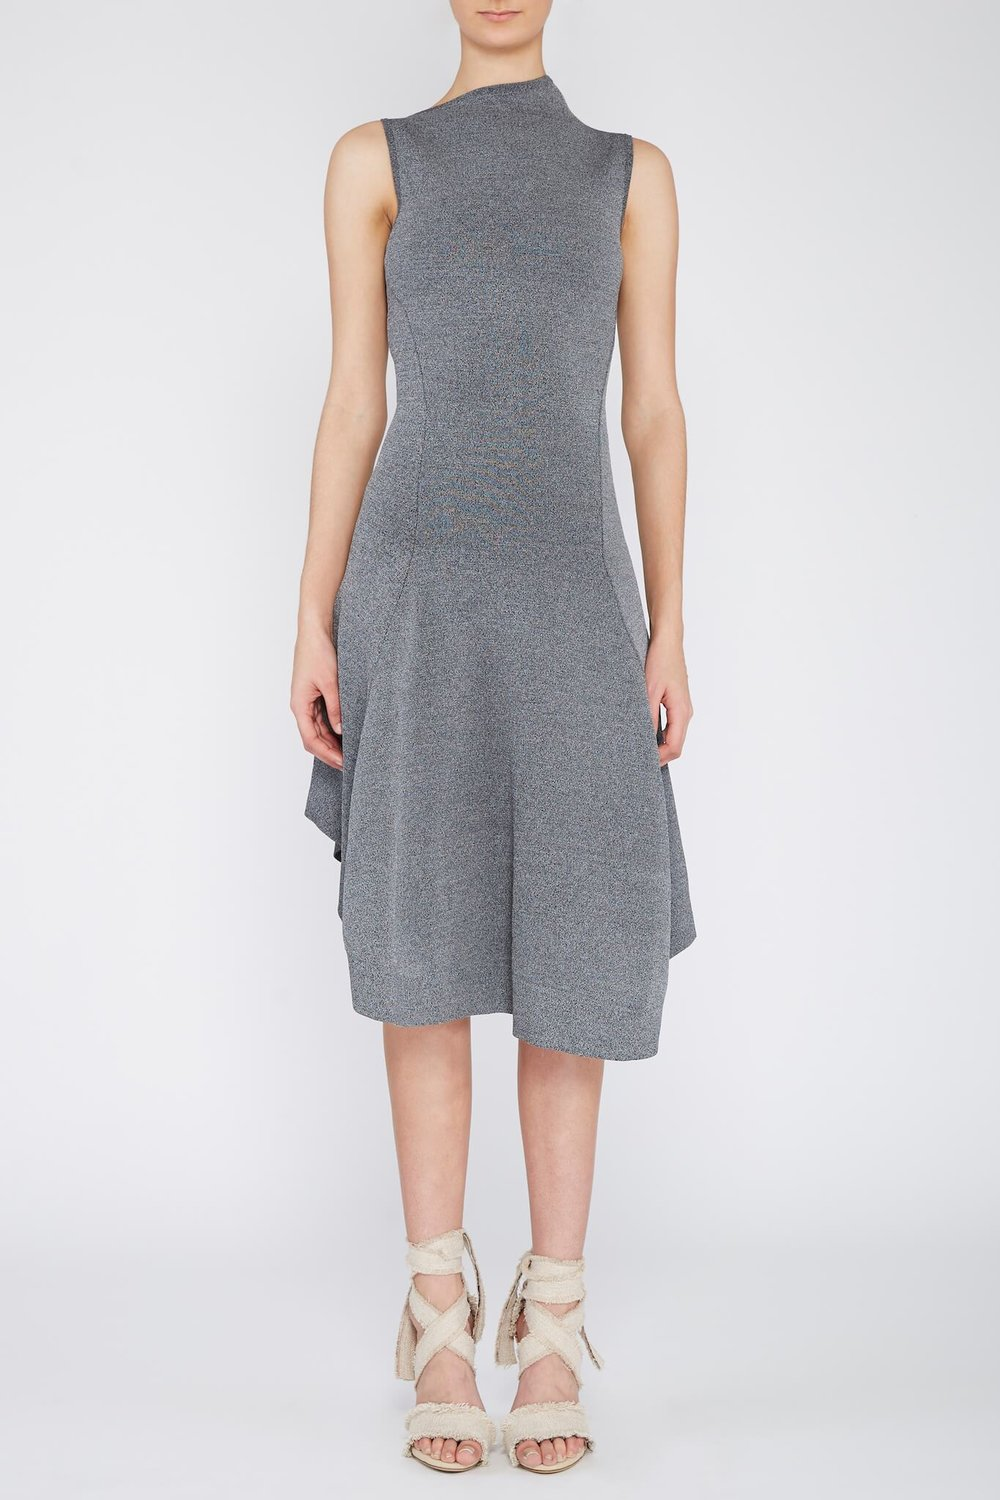 FREYA KNIT DRESS. Acler. $295.